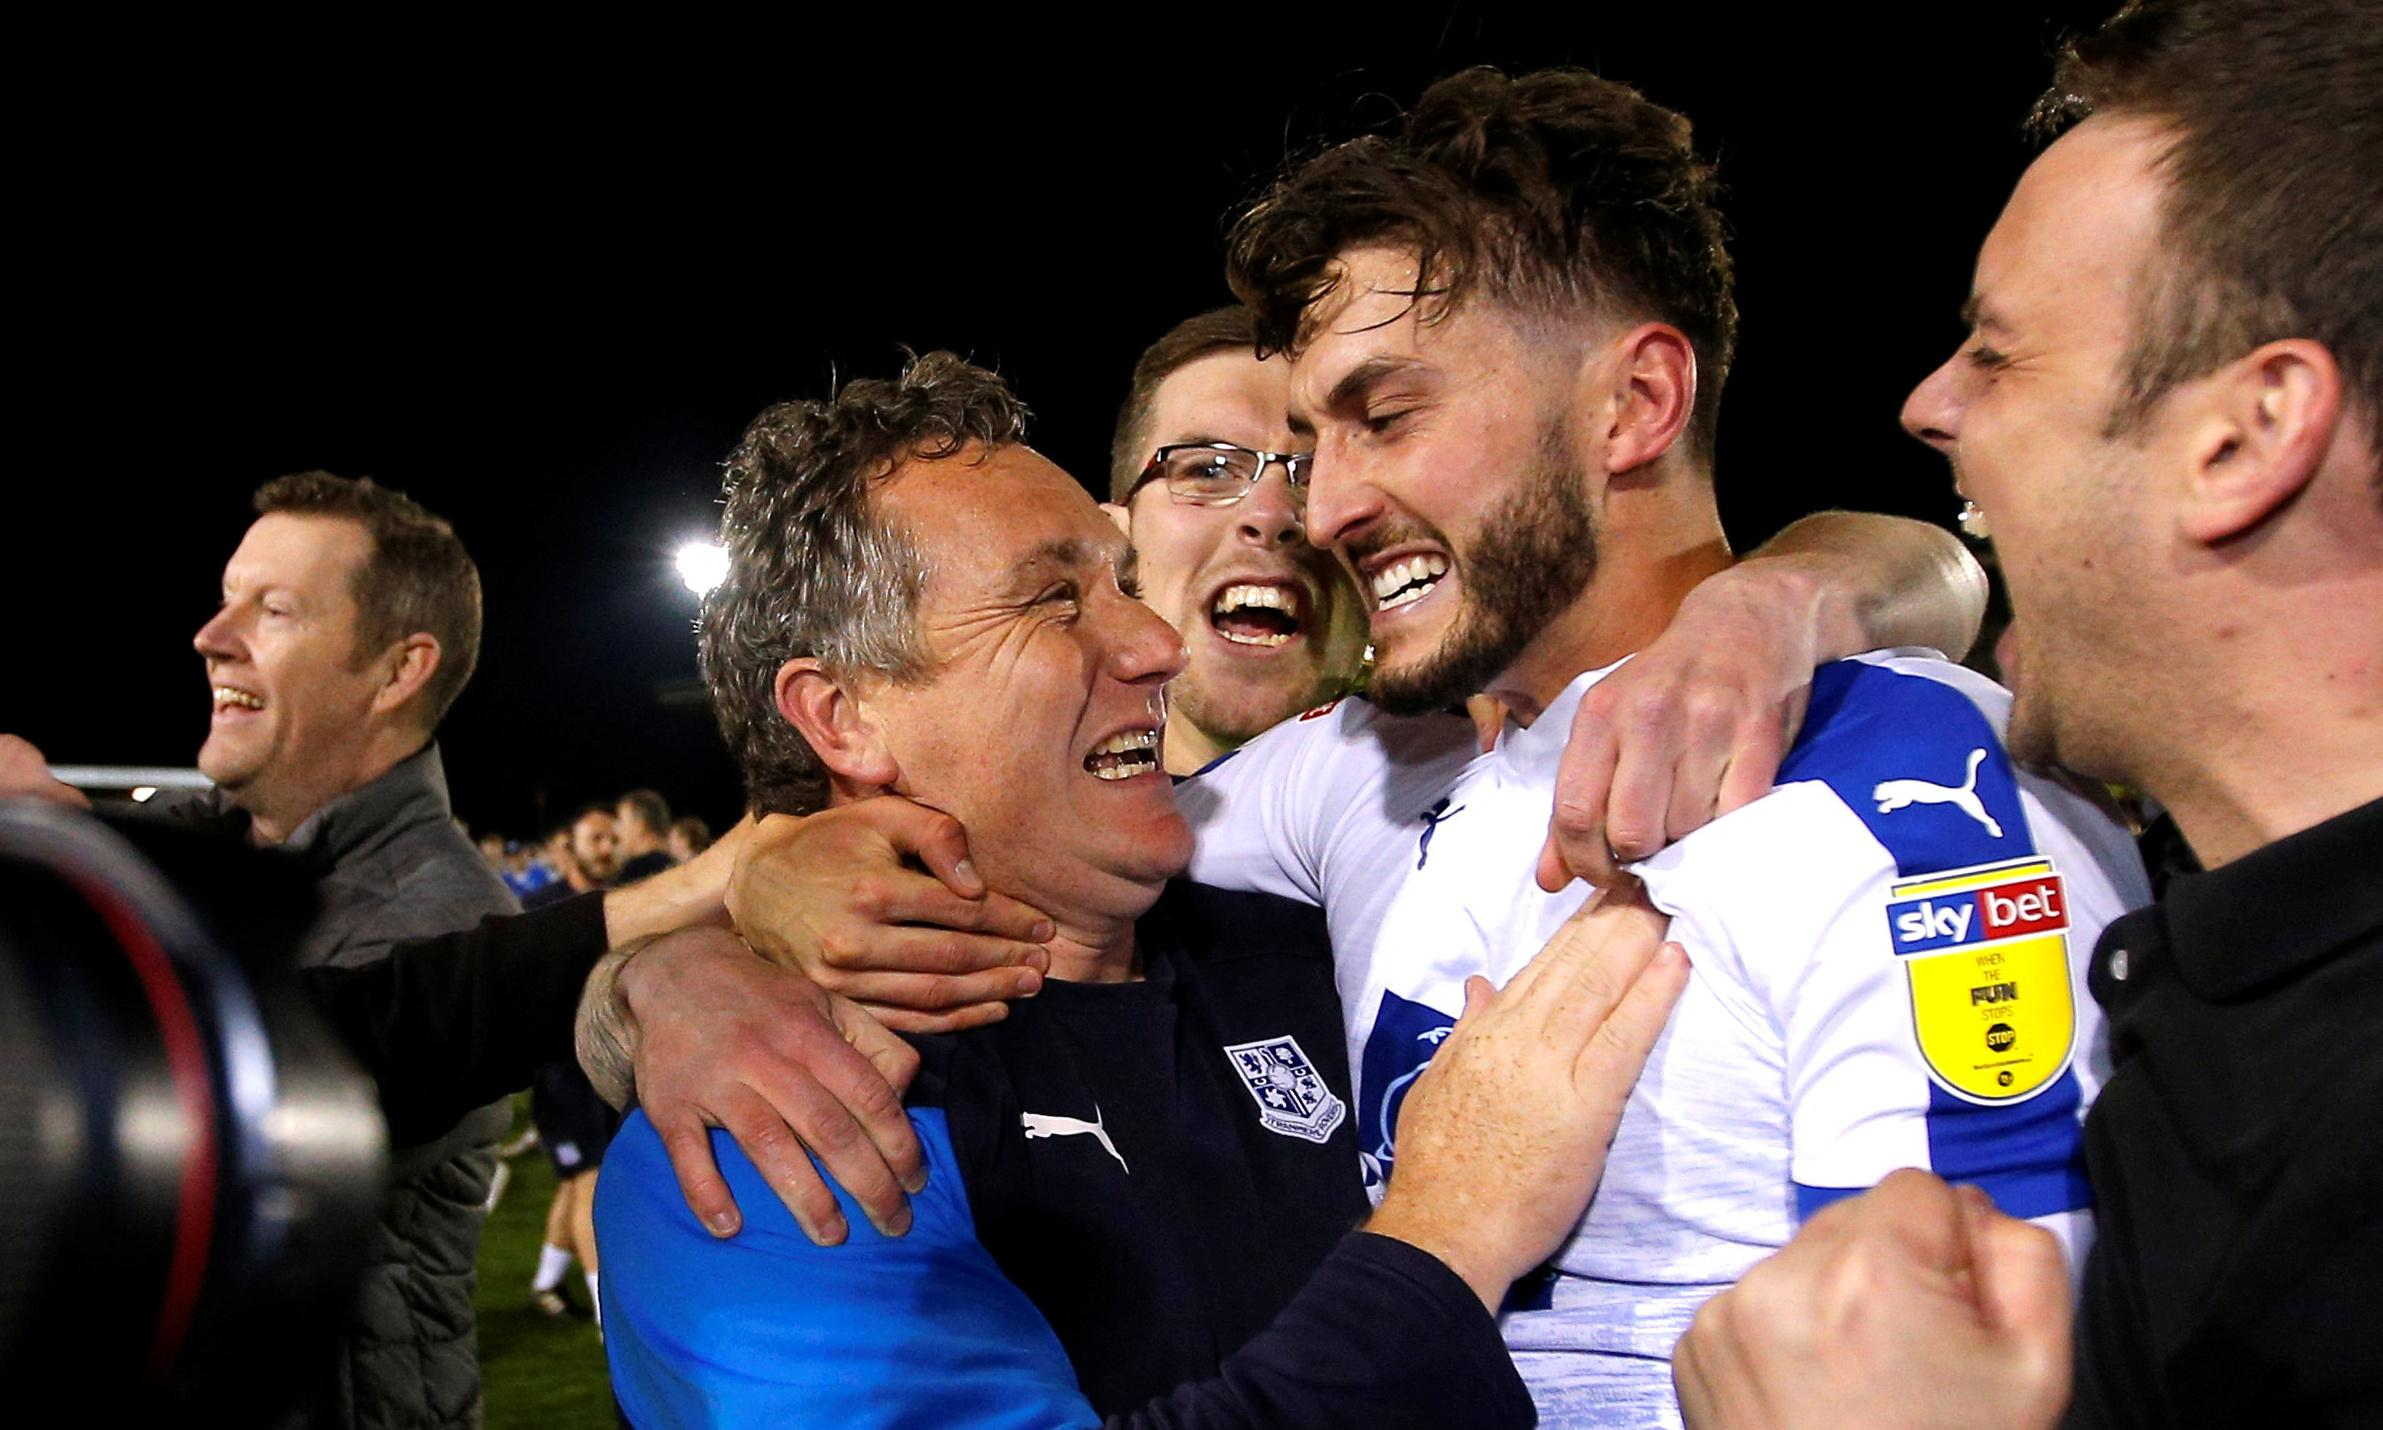 On Merseyside at the moment the spotlight is on Tranmere, says Mellon